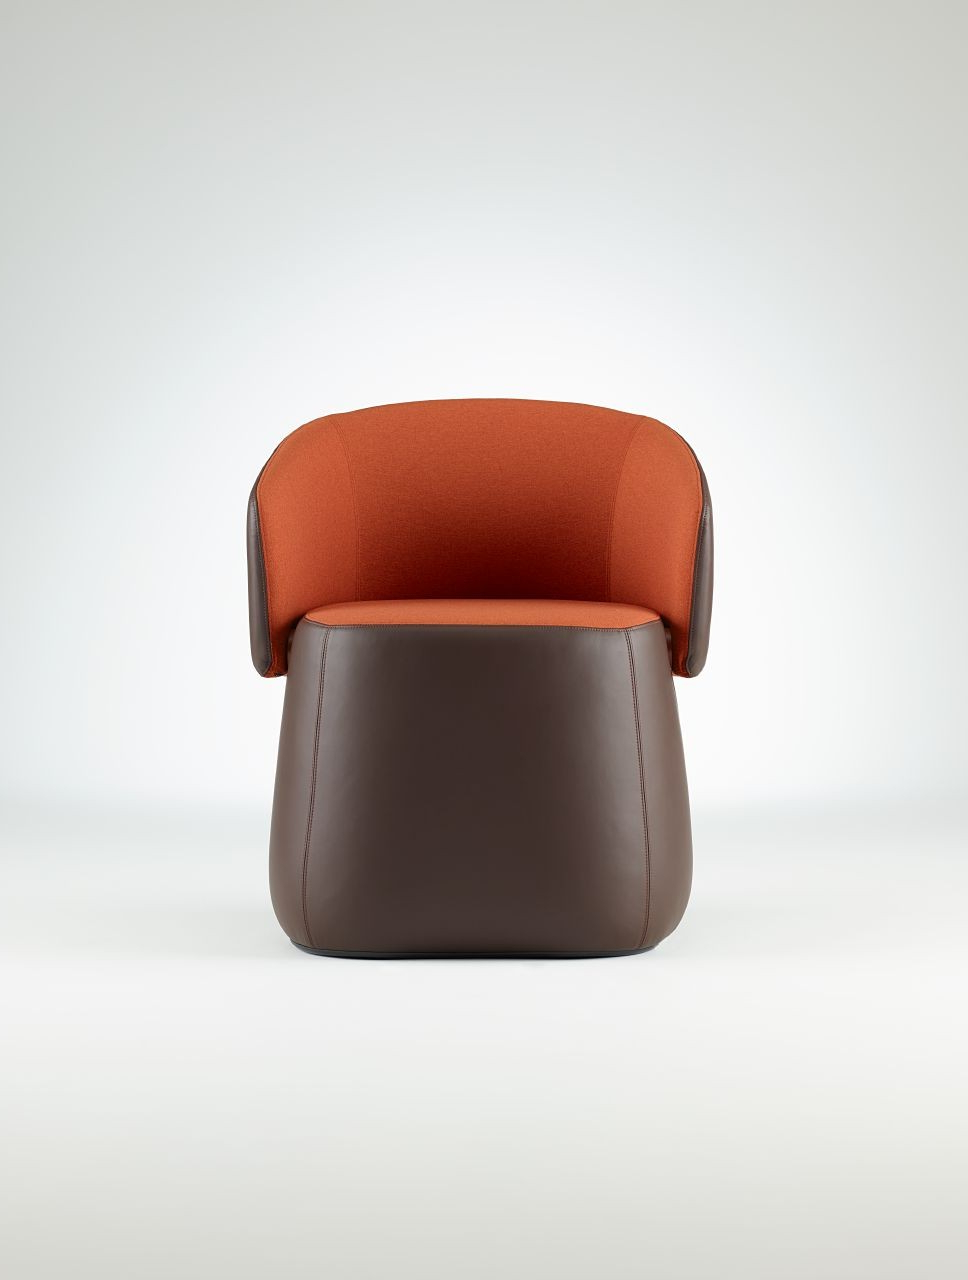 Chadwick Tomato Swivel Accent Chairs Intended For Famous Haworth Openest Collection Chick Pouf With Back – Modern Planet (View 3 of 20)